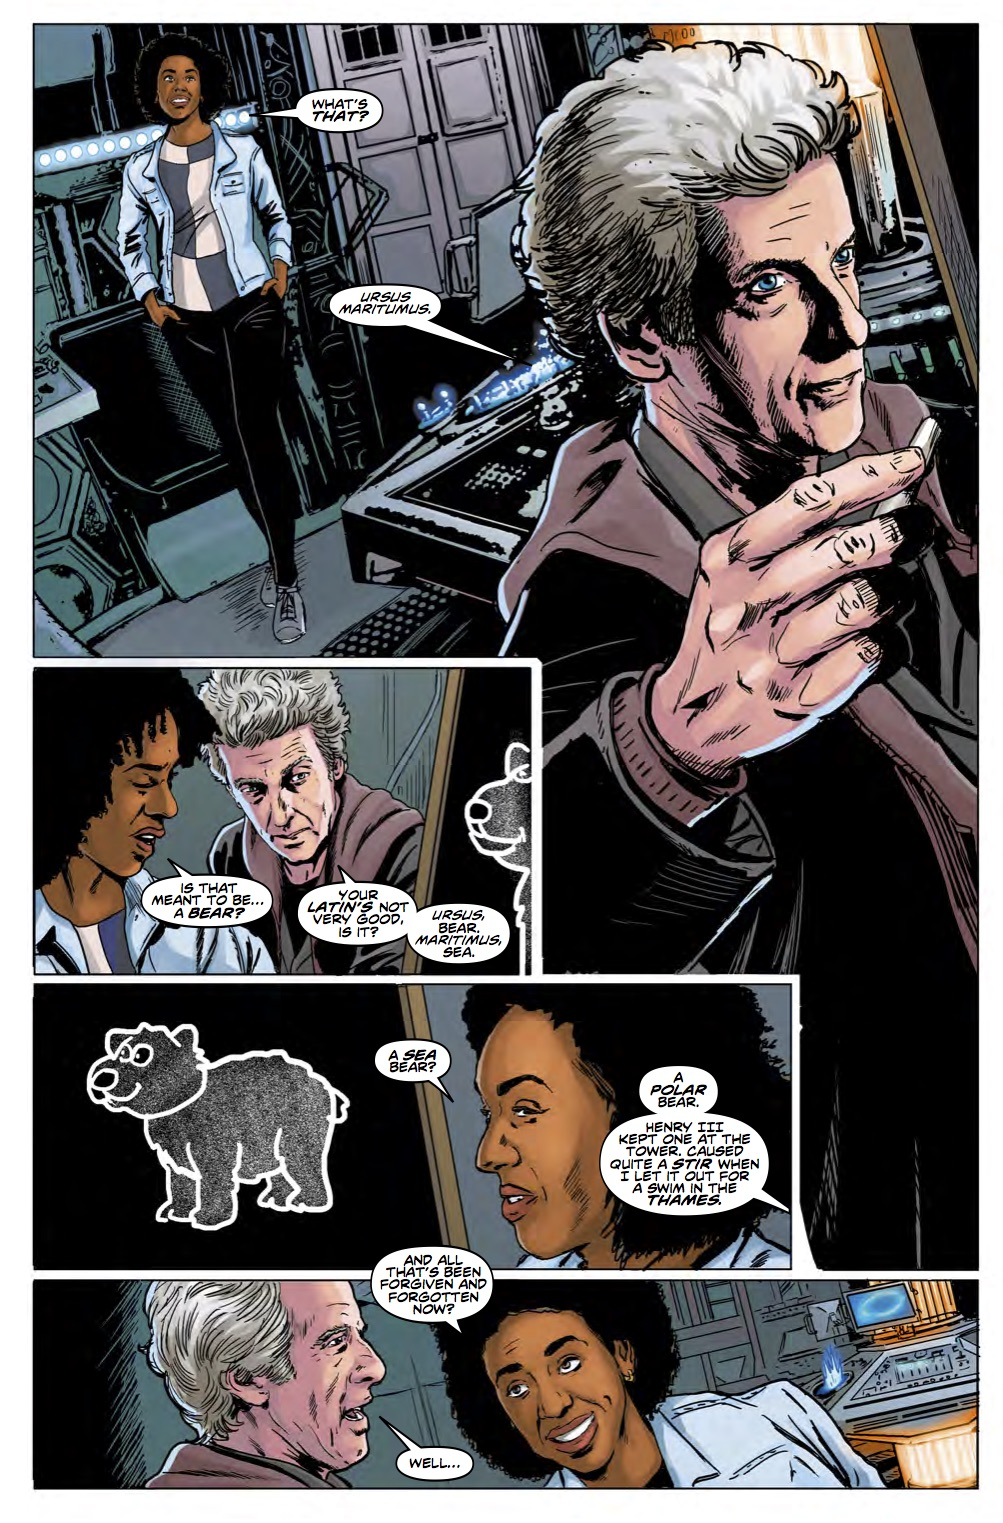 Doctor Who 12th Year Three #5 Page 3 (Credit: Titan)